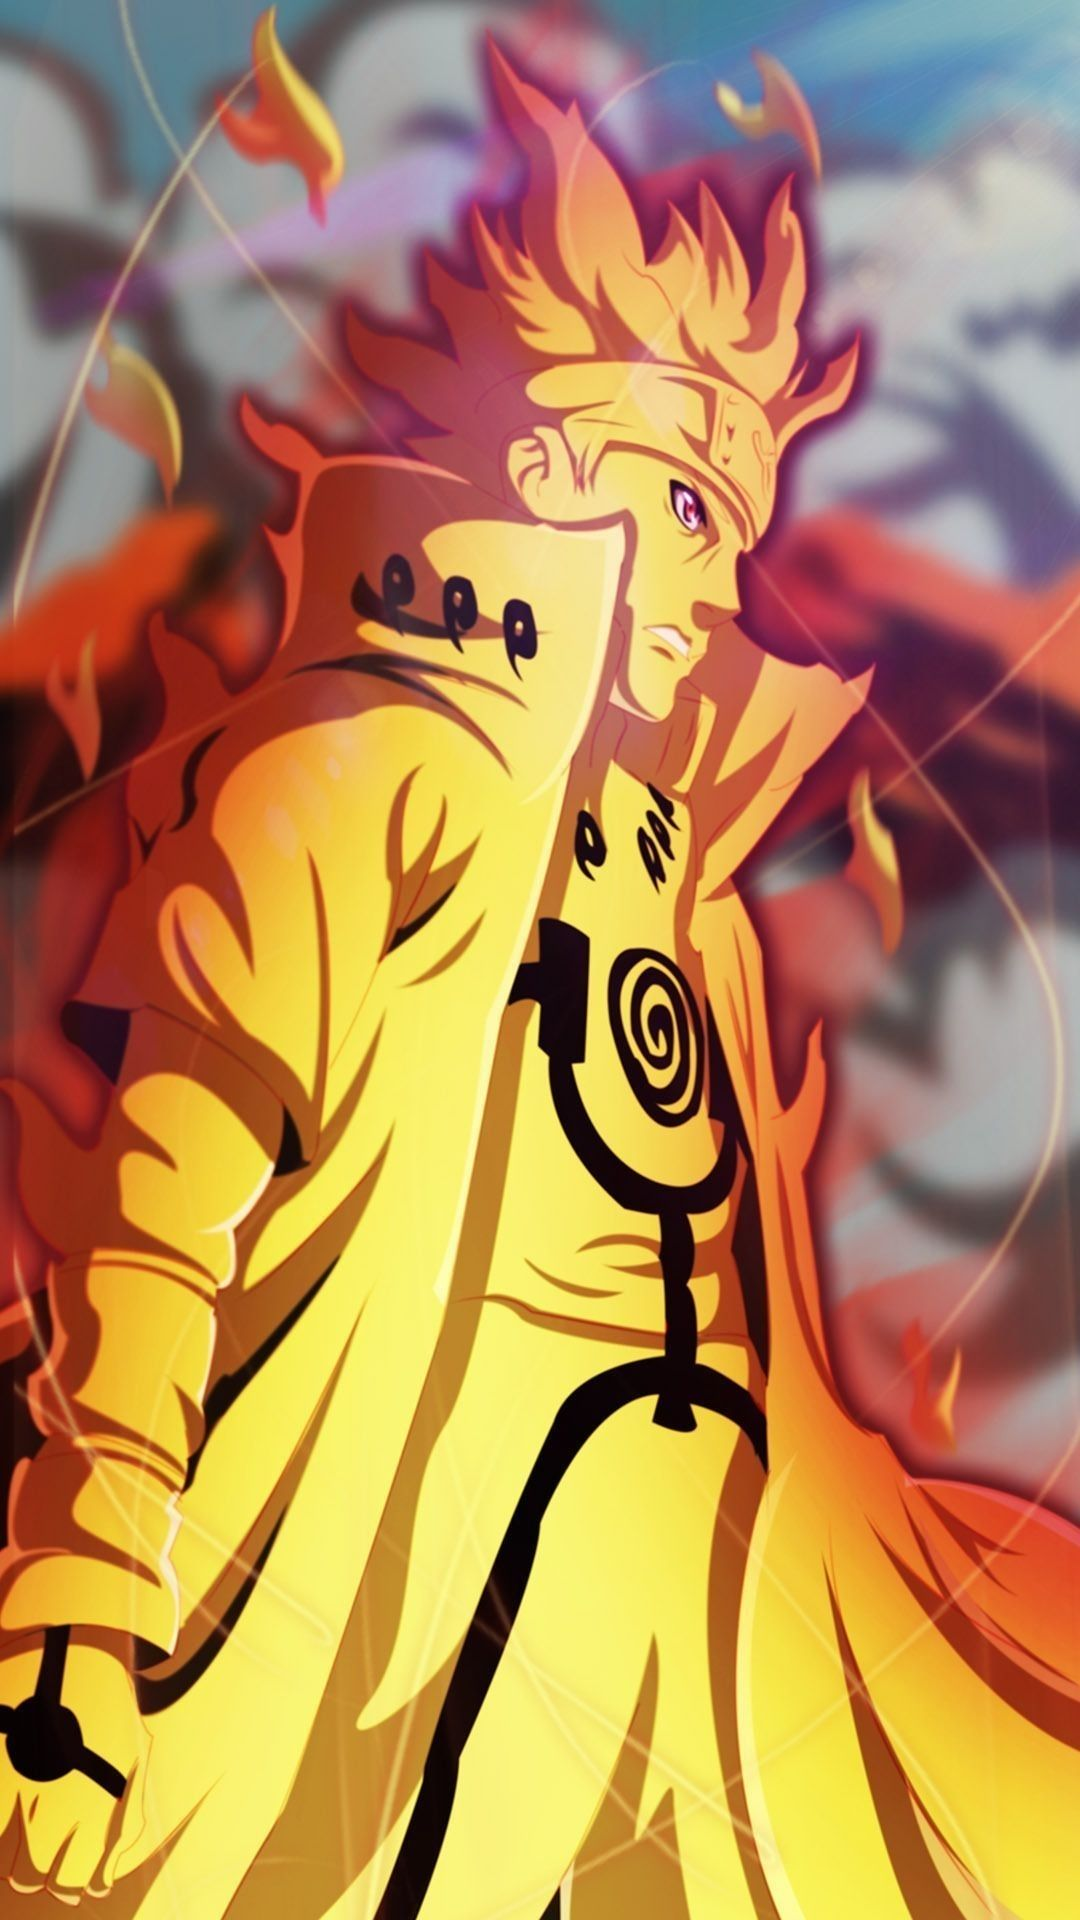 naruto wallpaper iphone 3gs - download new naruto wallpaper iphone